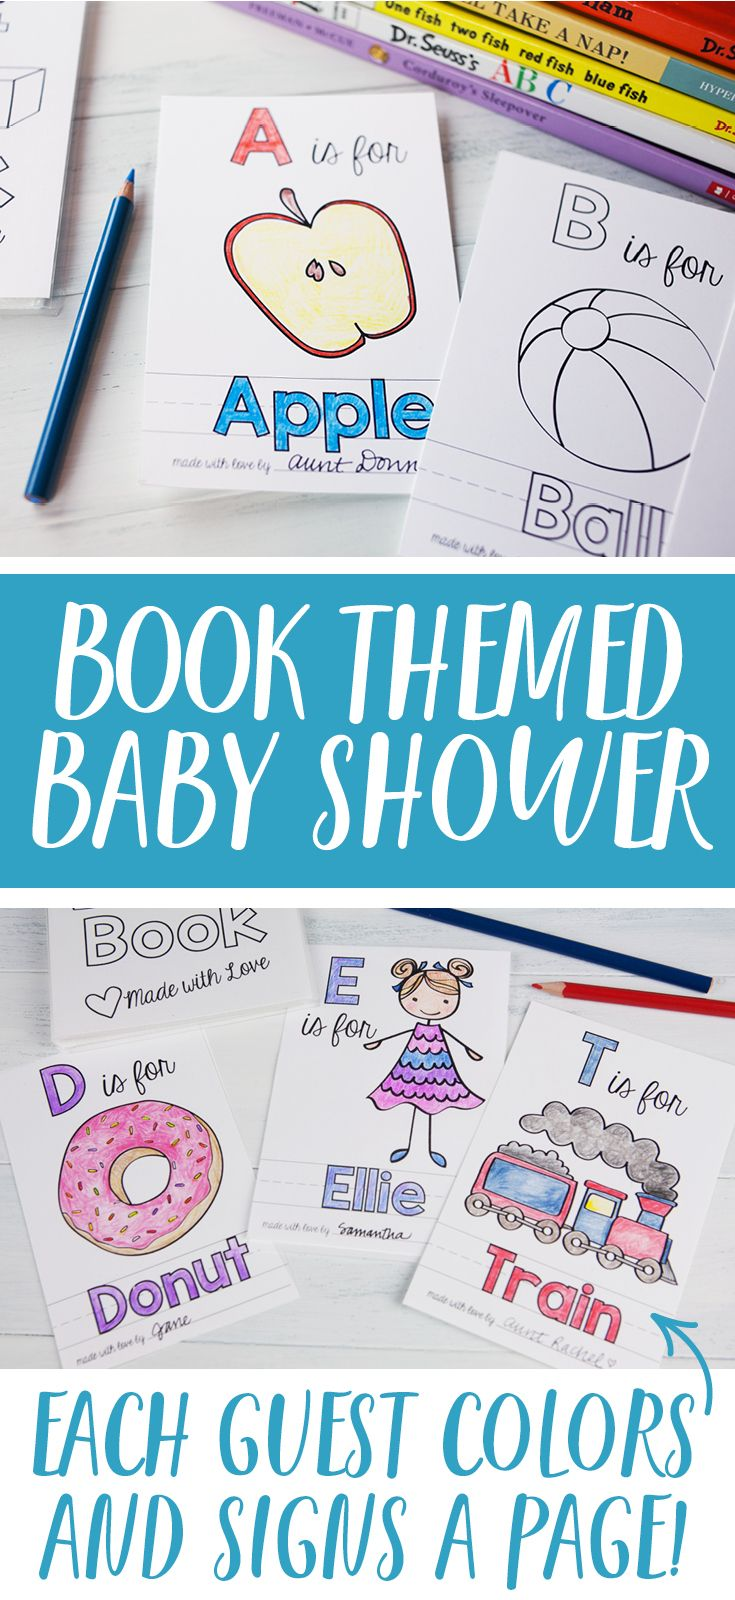 The perfect activity for a Book Themed Baby Shower! Each guests colors a page and signs the bottom--doubles as a guest book!  #baby #babyshowergames #babyshowerideas